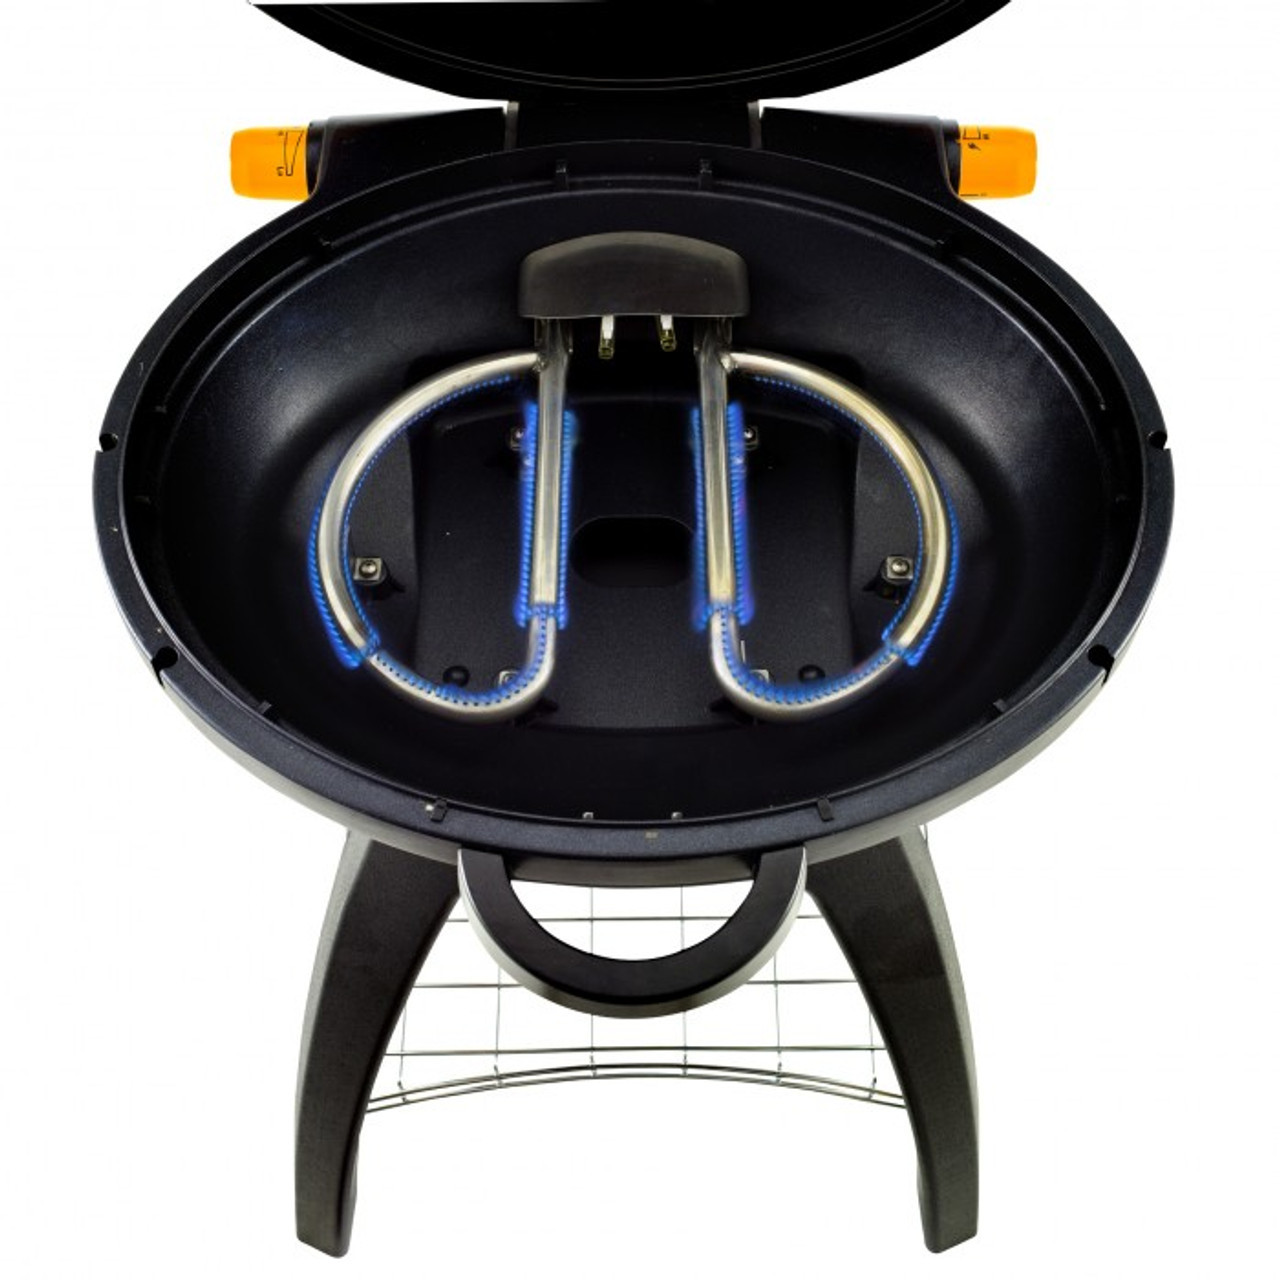 BeefEater BUGG has 2 independently controlled 10mj burners